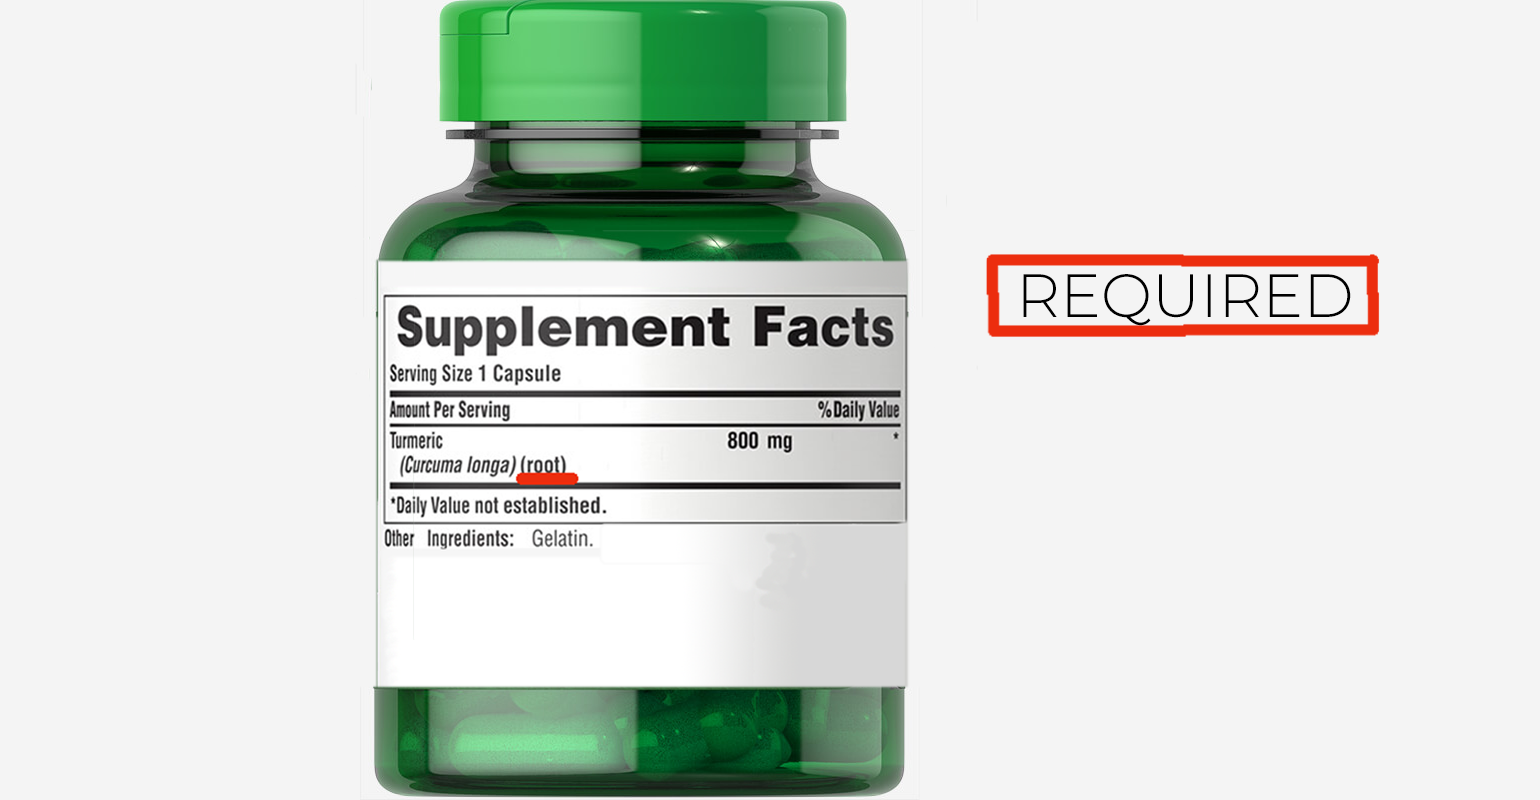 Supplement facts panels must identify the part of the plant from which herbal ingredients came.